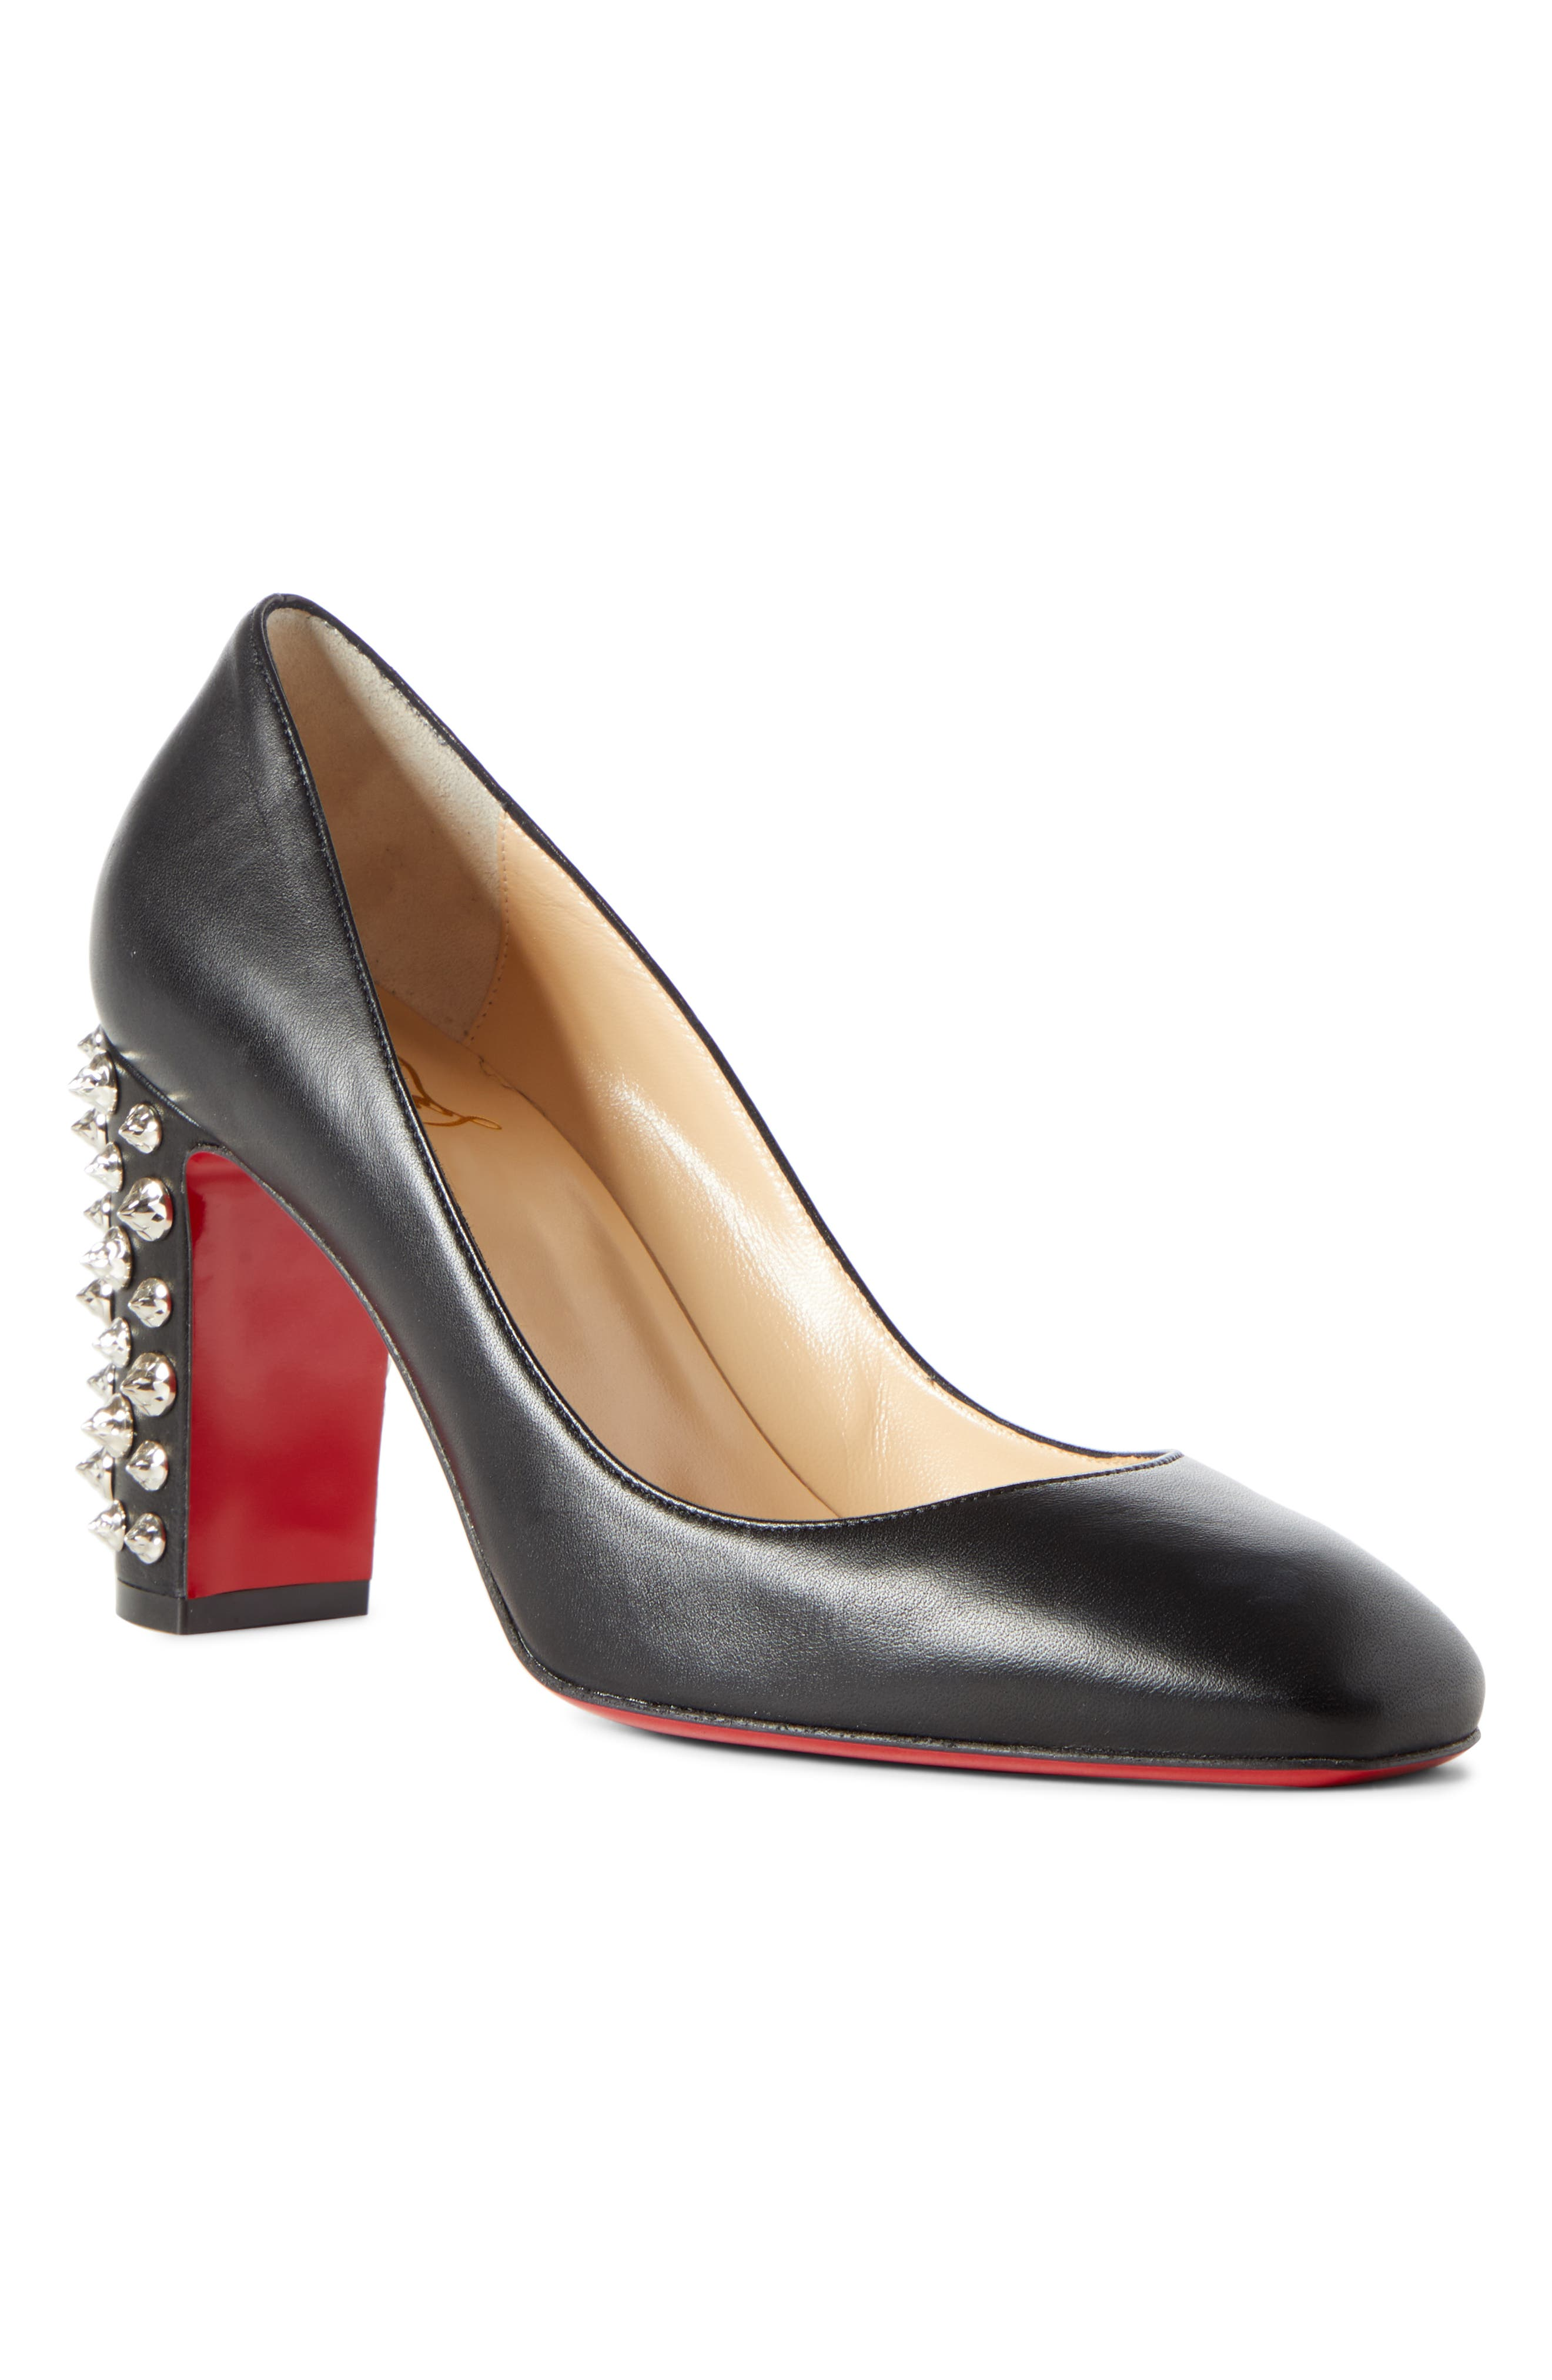 Christian Louboutin Donna Spike Square Toe Pump, Red